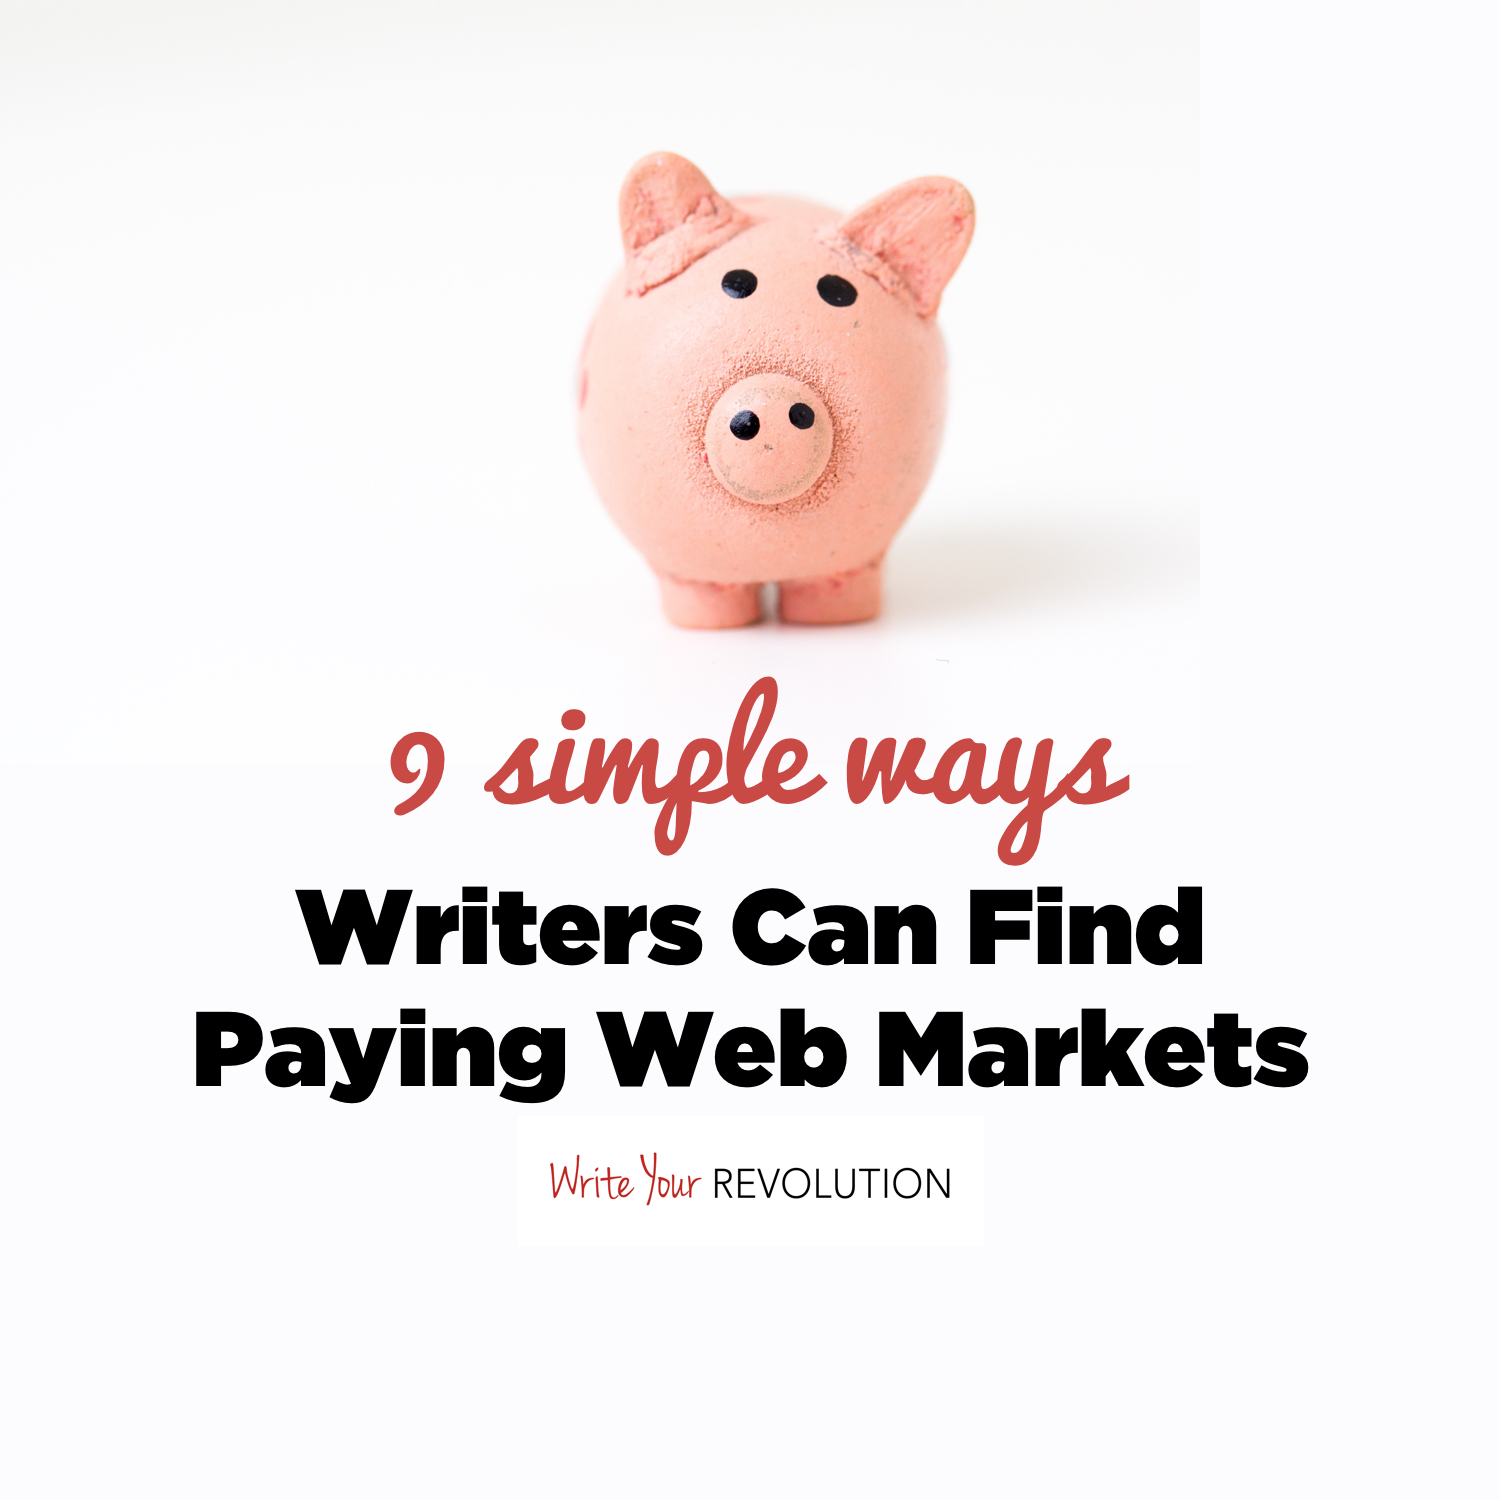 9 Simple Ways Writers Can Find Paying Web Markets